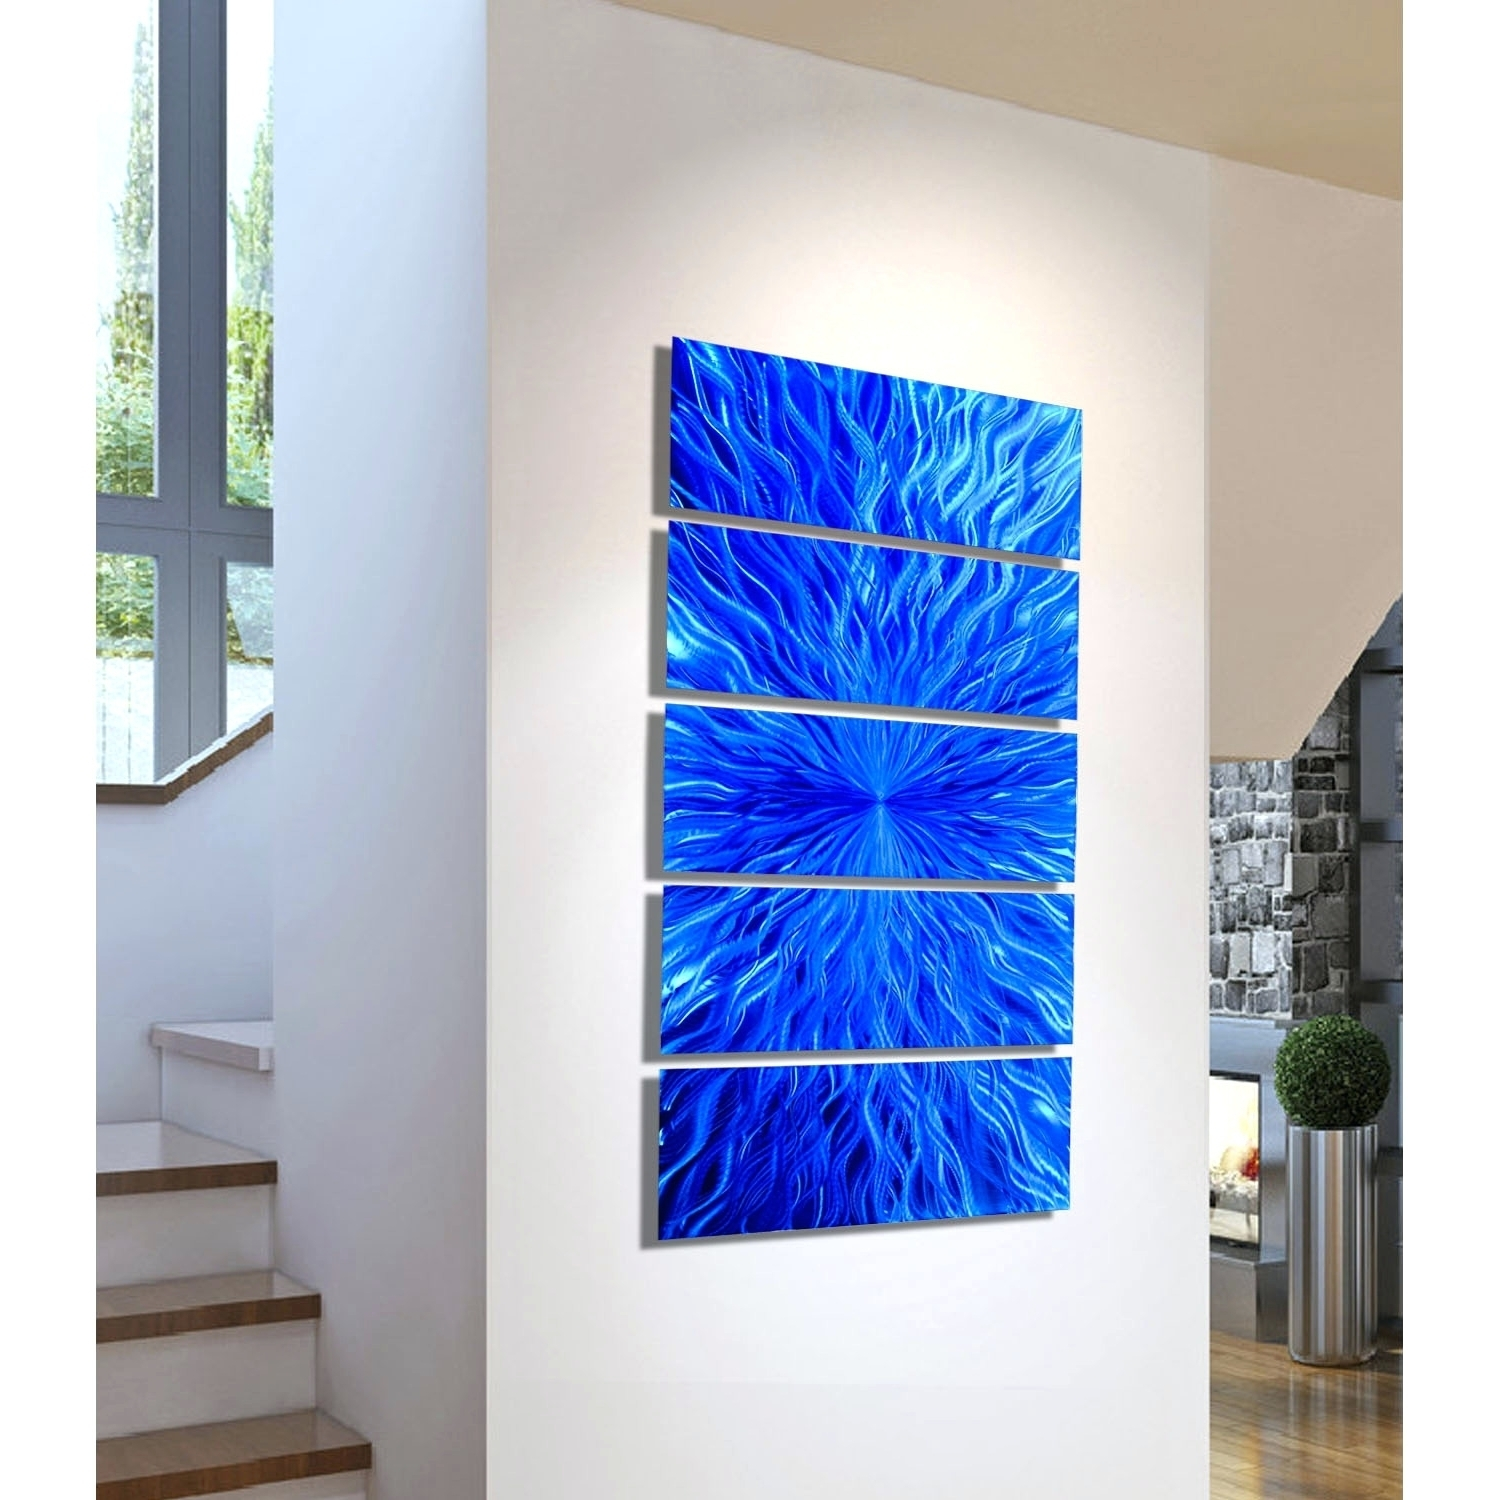 Contemporary Fused Gl Cute Blown Glass Wall Art – Wall Decoration Ideas Within Most Recent Blown Glass Wall Art (Gallery 2 of 20)